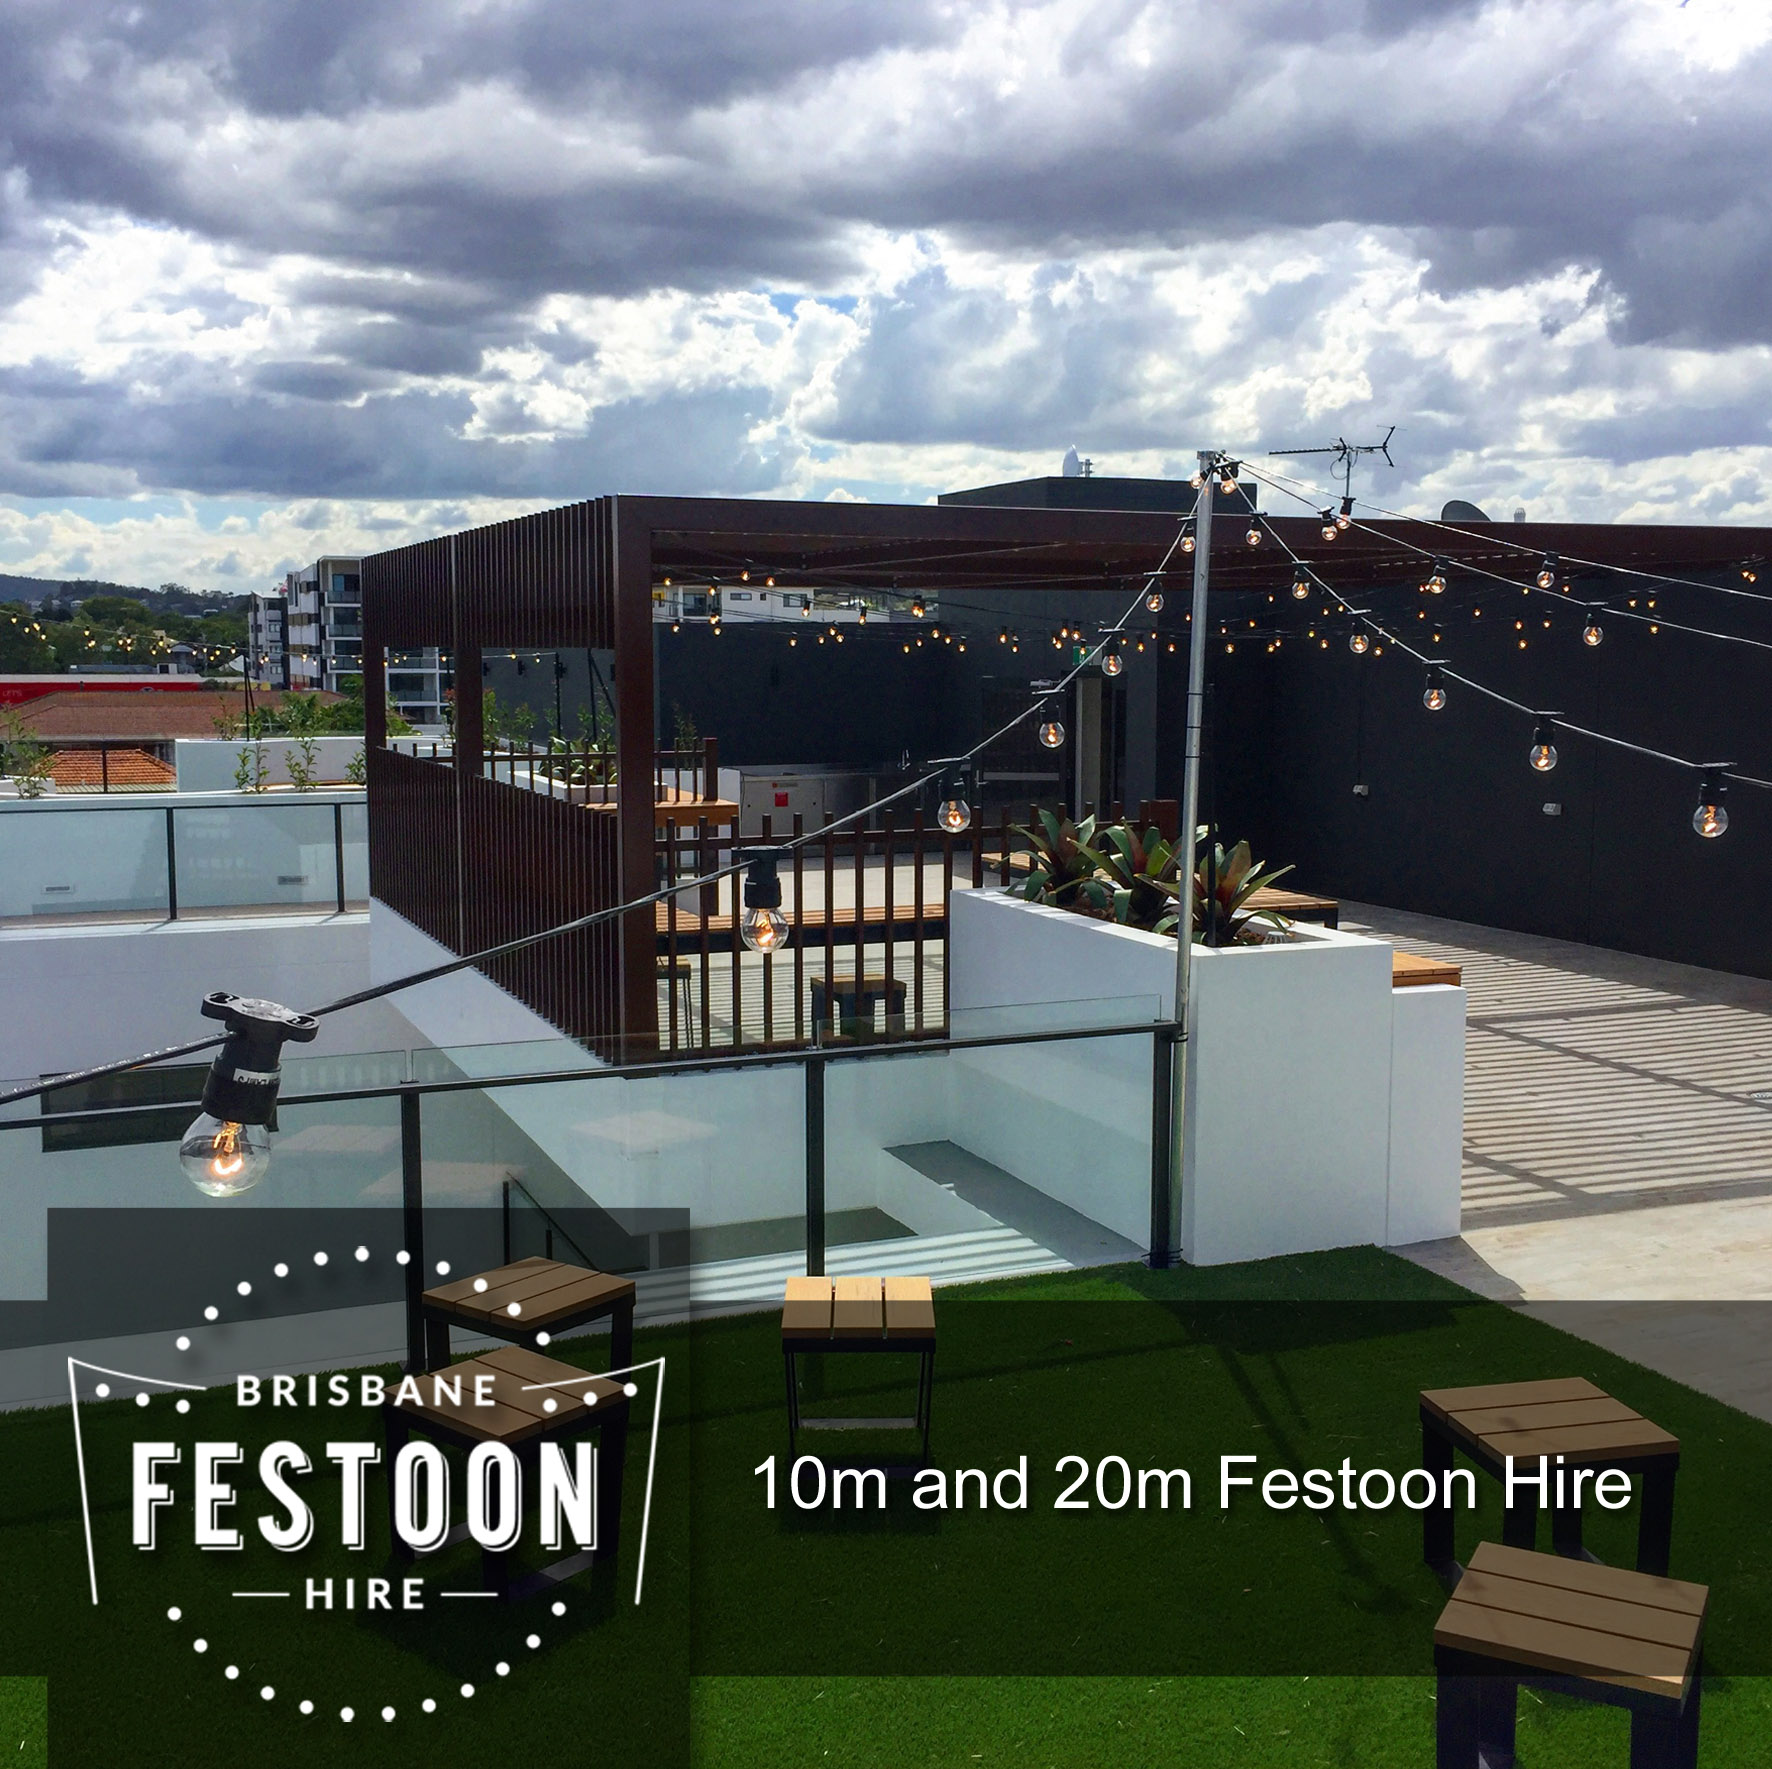 Brisbane Festoon Hire - 10m and 20m Festoon Hire 2.jpg